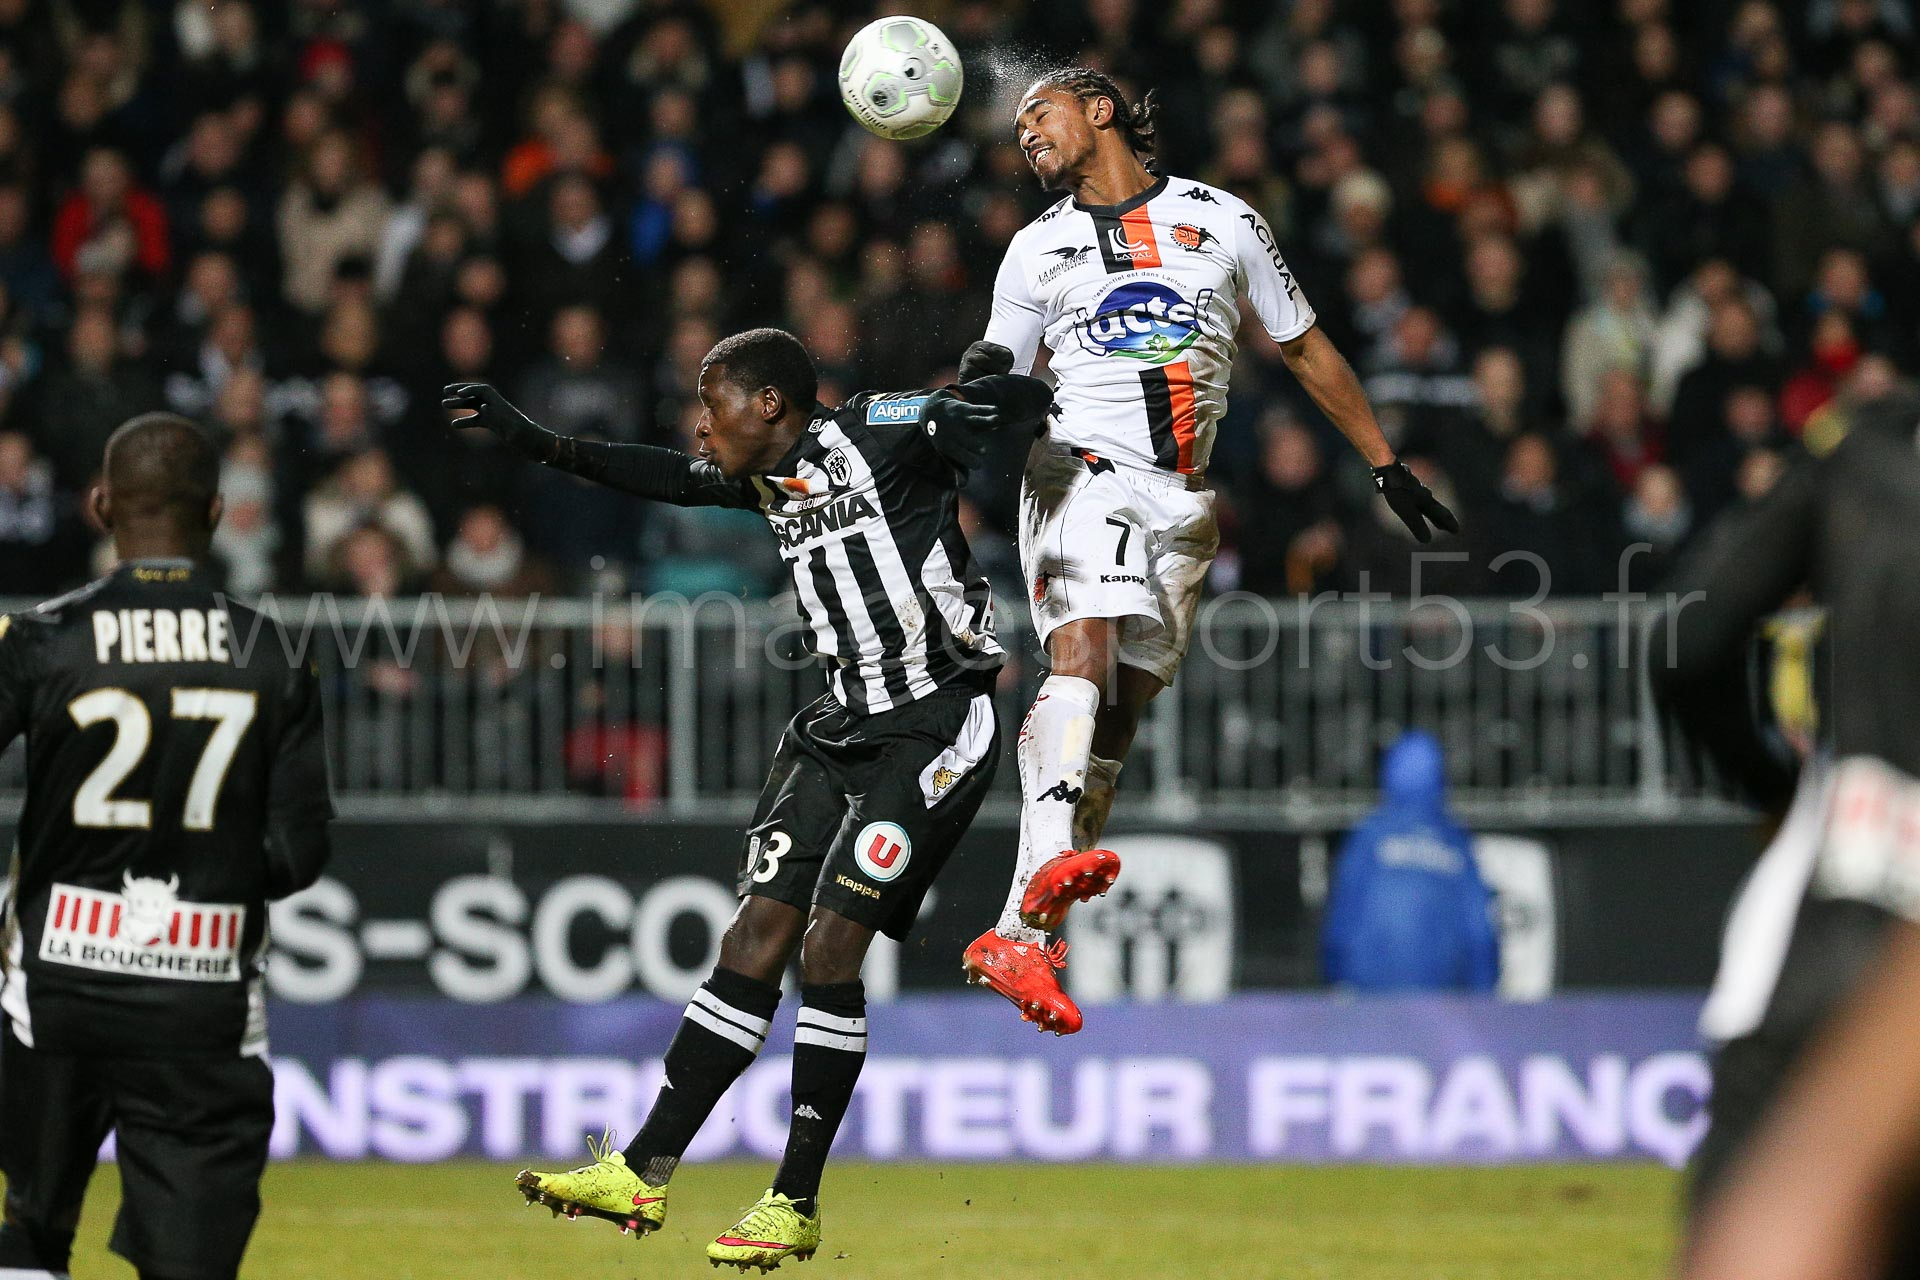 NG-Ligue2-1415-J25-Angers-Laval_25